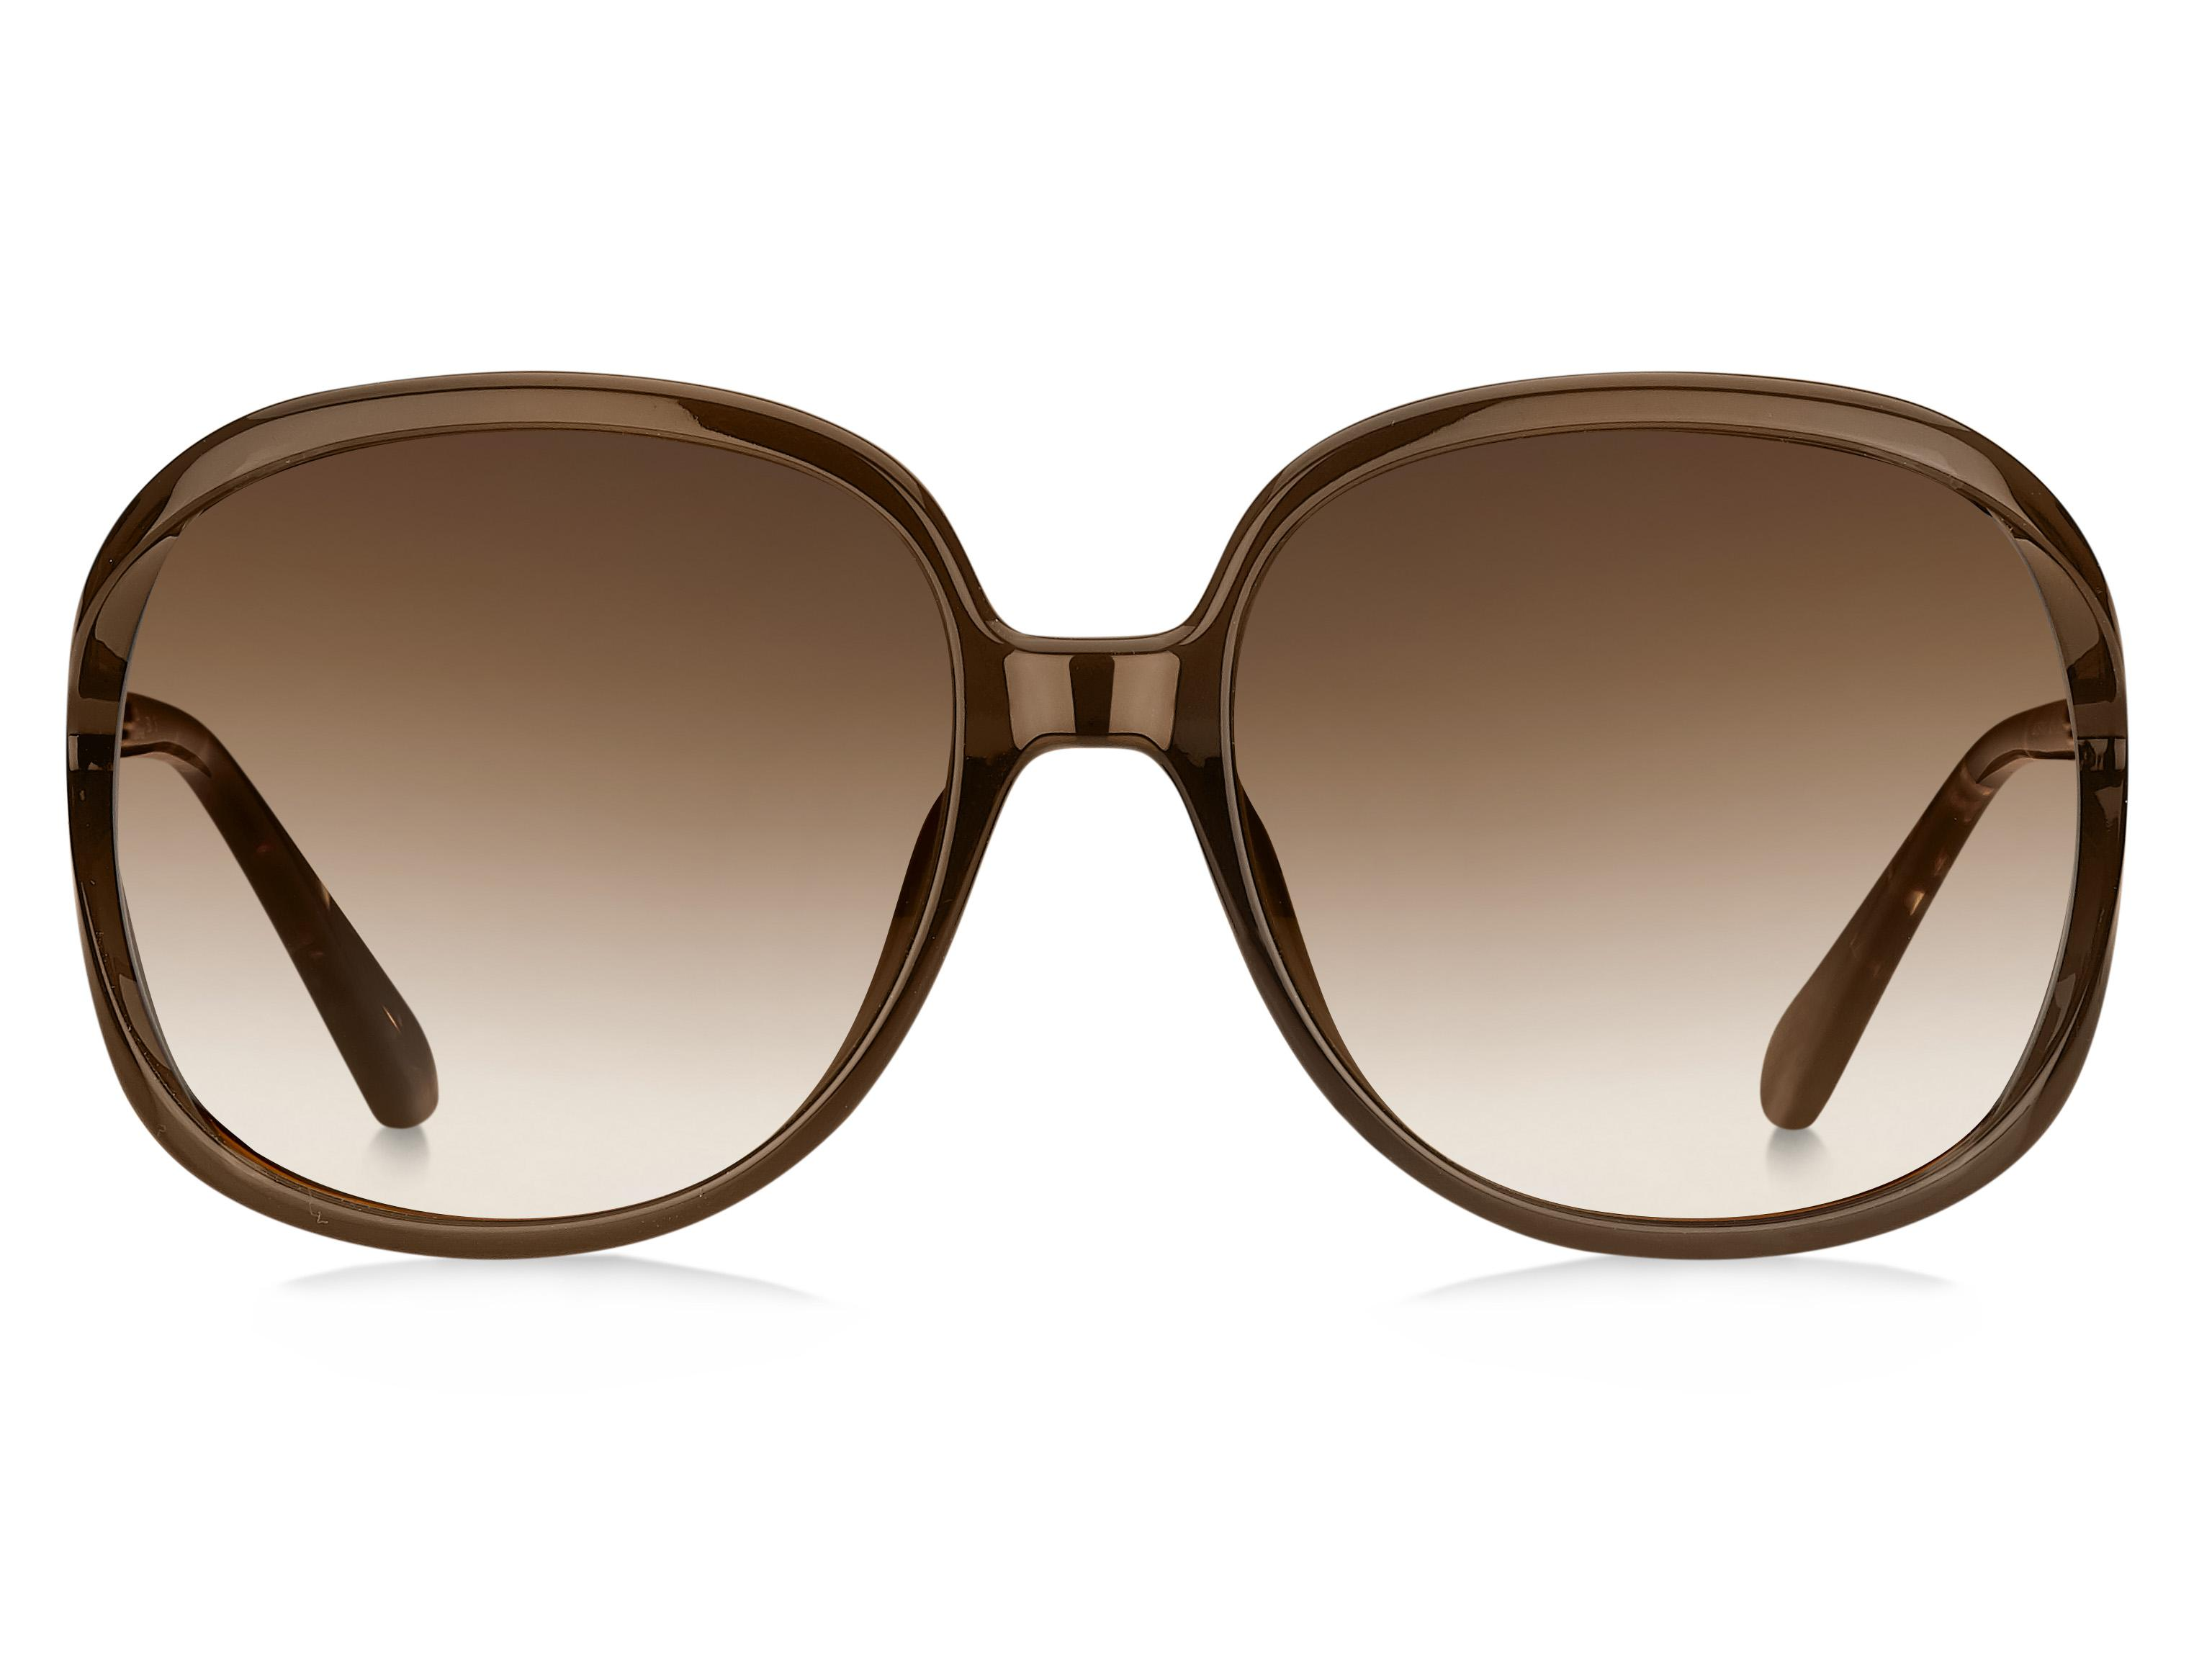 32bb60bab239 Lyst - Kate Spade Mackenna/s Rectangle Sunglasses in Brown